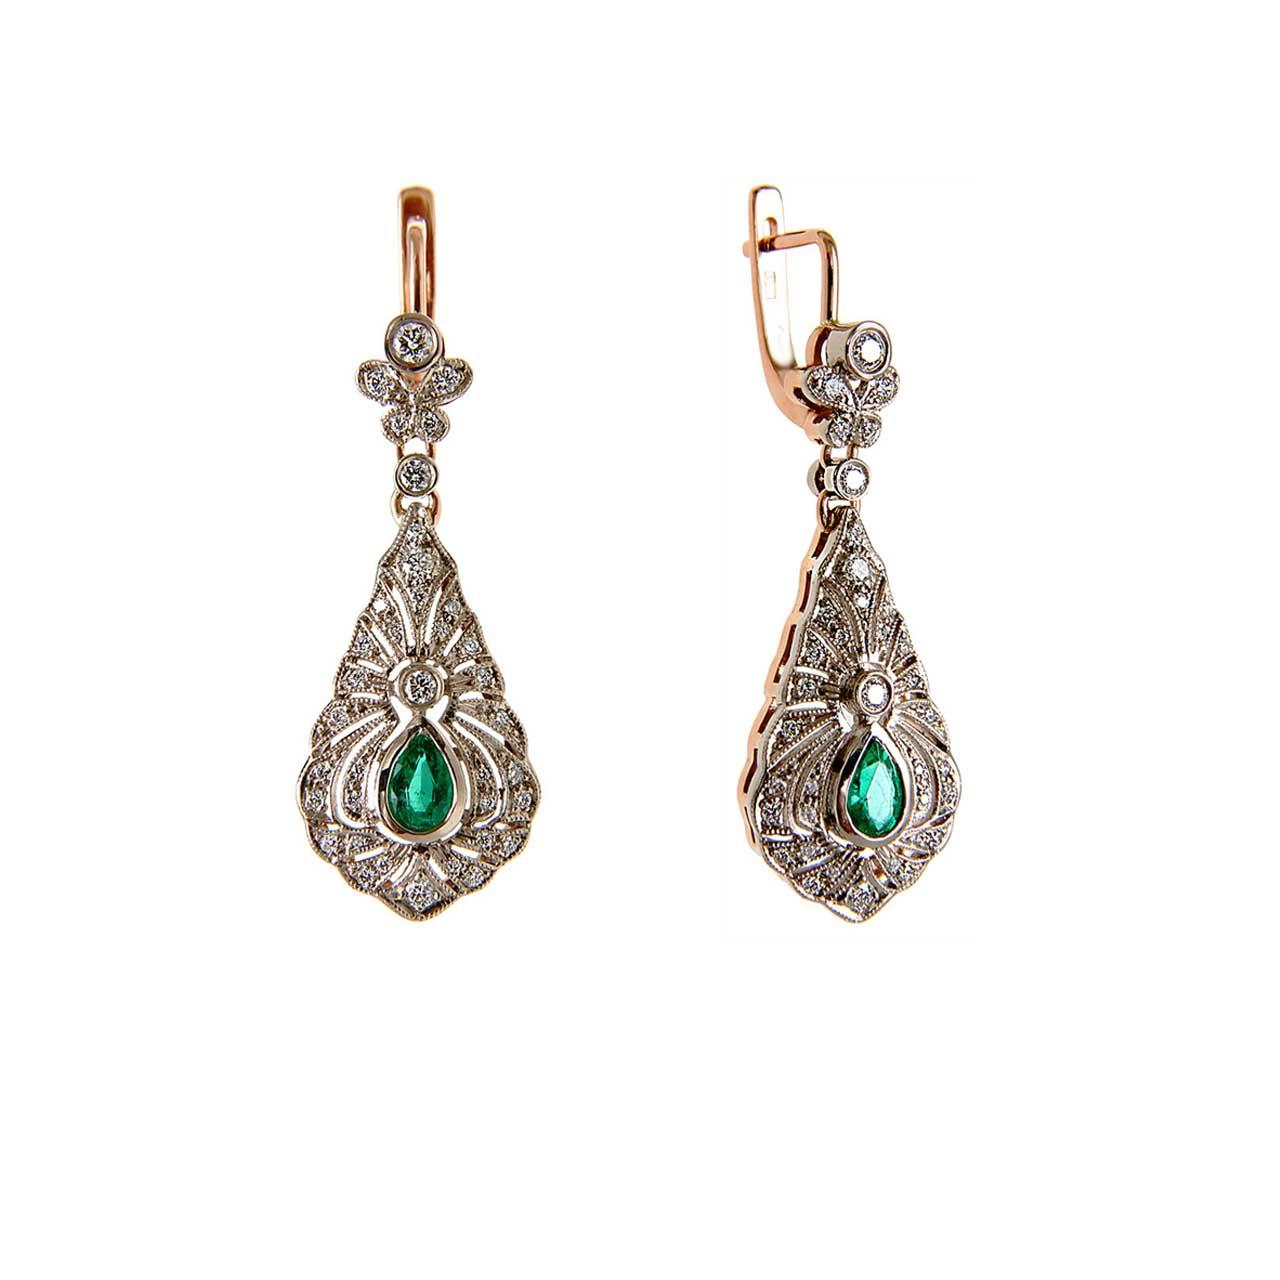 Certified Emerald and Diamond Earrings